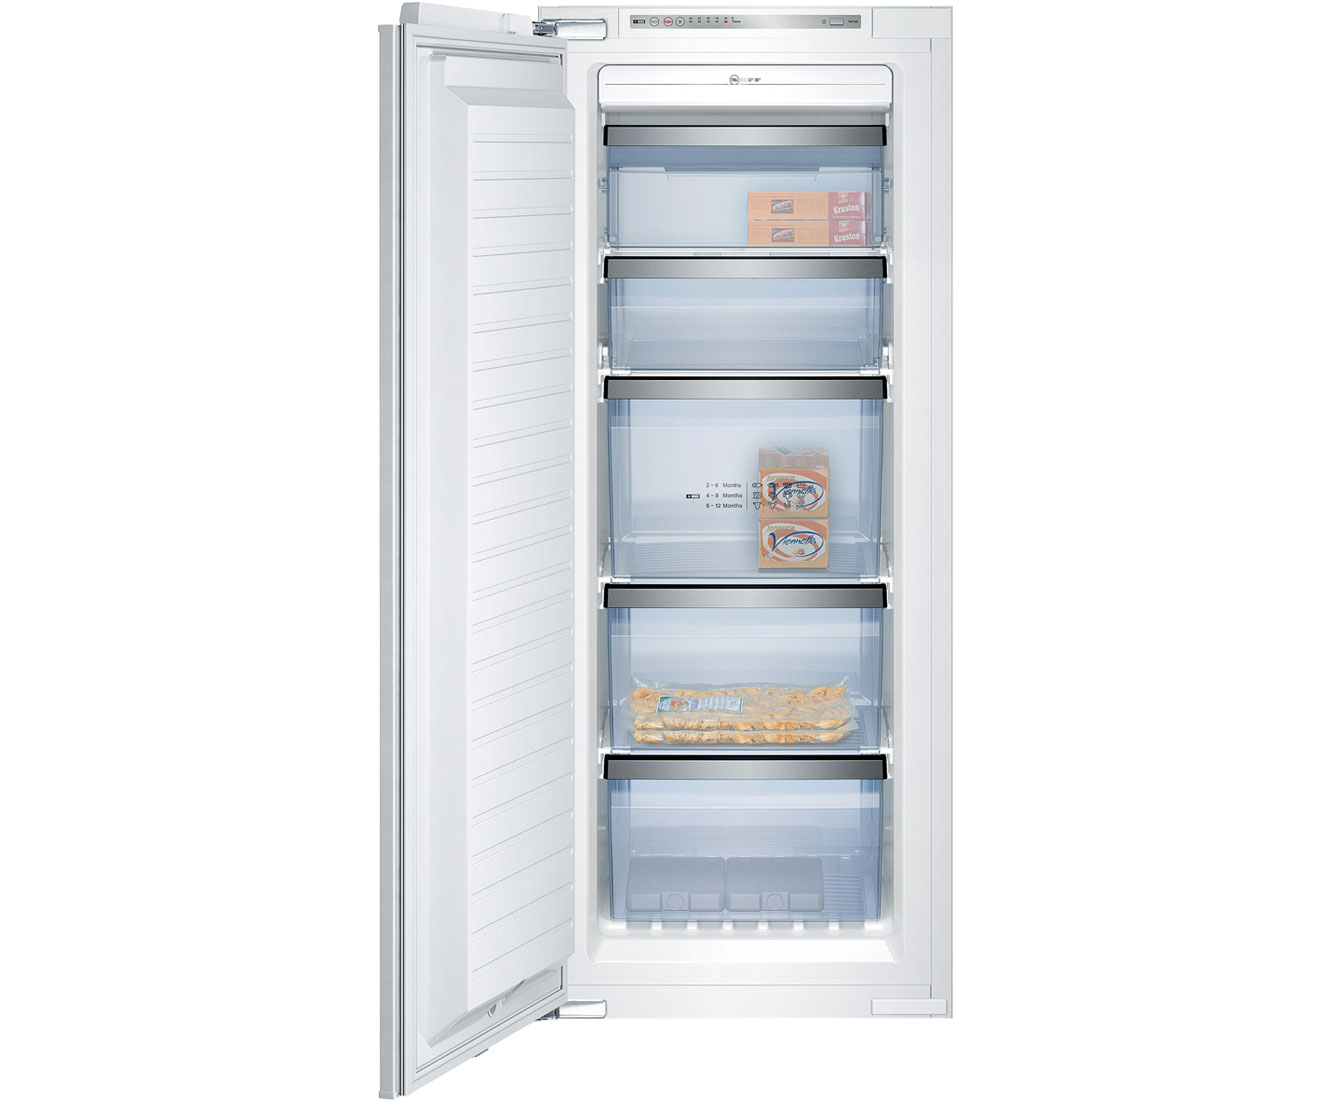 Neff G8120X0 Integrated Freezer Frost Free in White